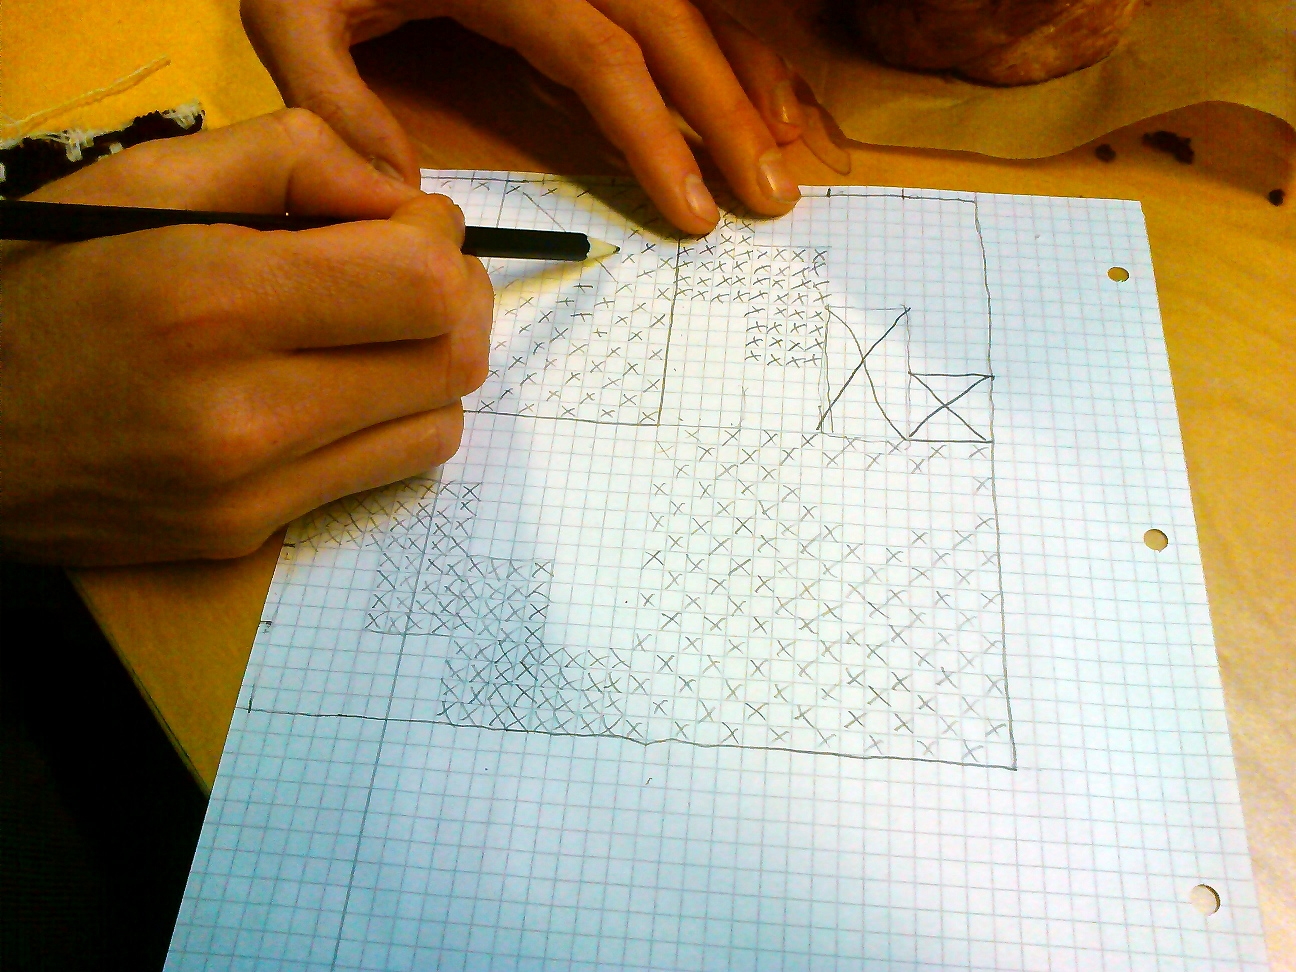 Alex recording warp crossings on graph paper